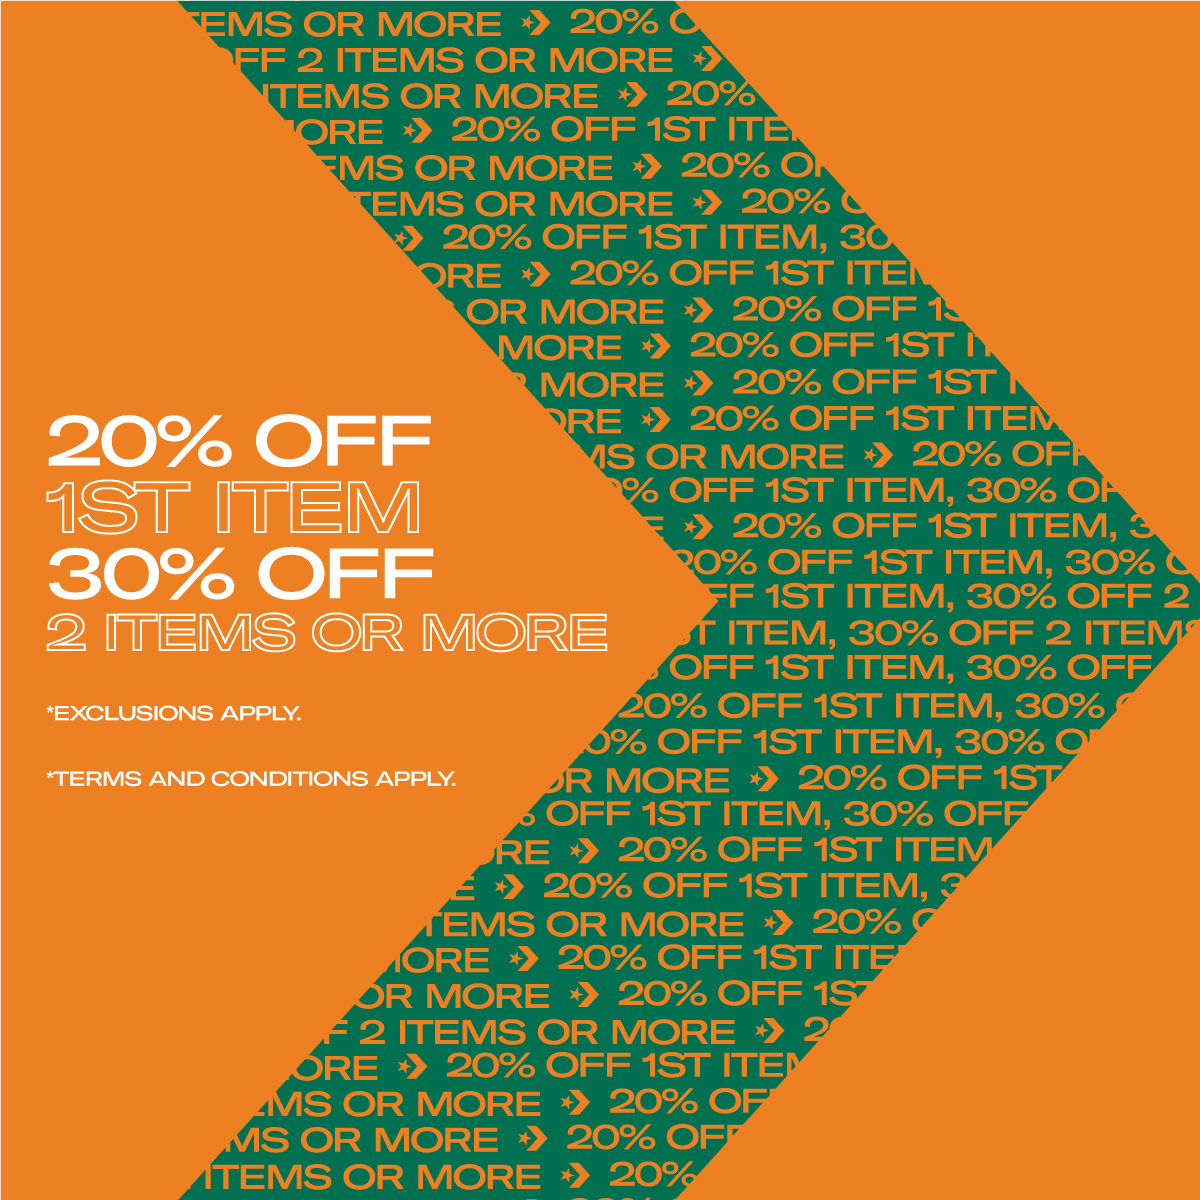 Converse Great Singapore Sale is here!  From 17 Sep, enjoy 20% OFF for 1st item, 30% OFF for 2 items or more!